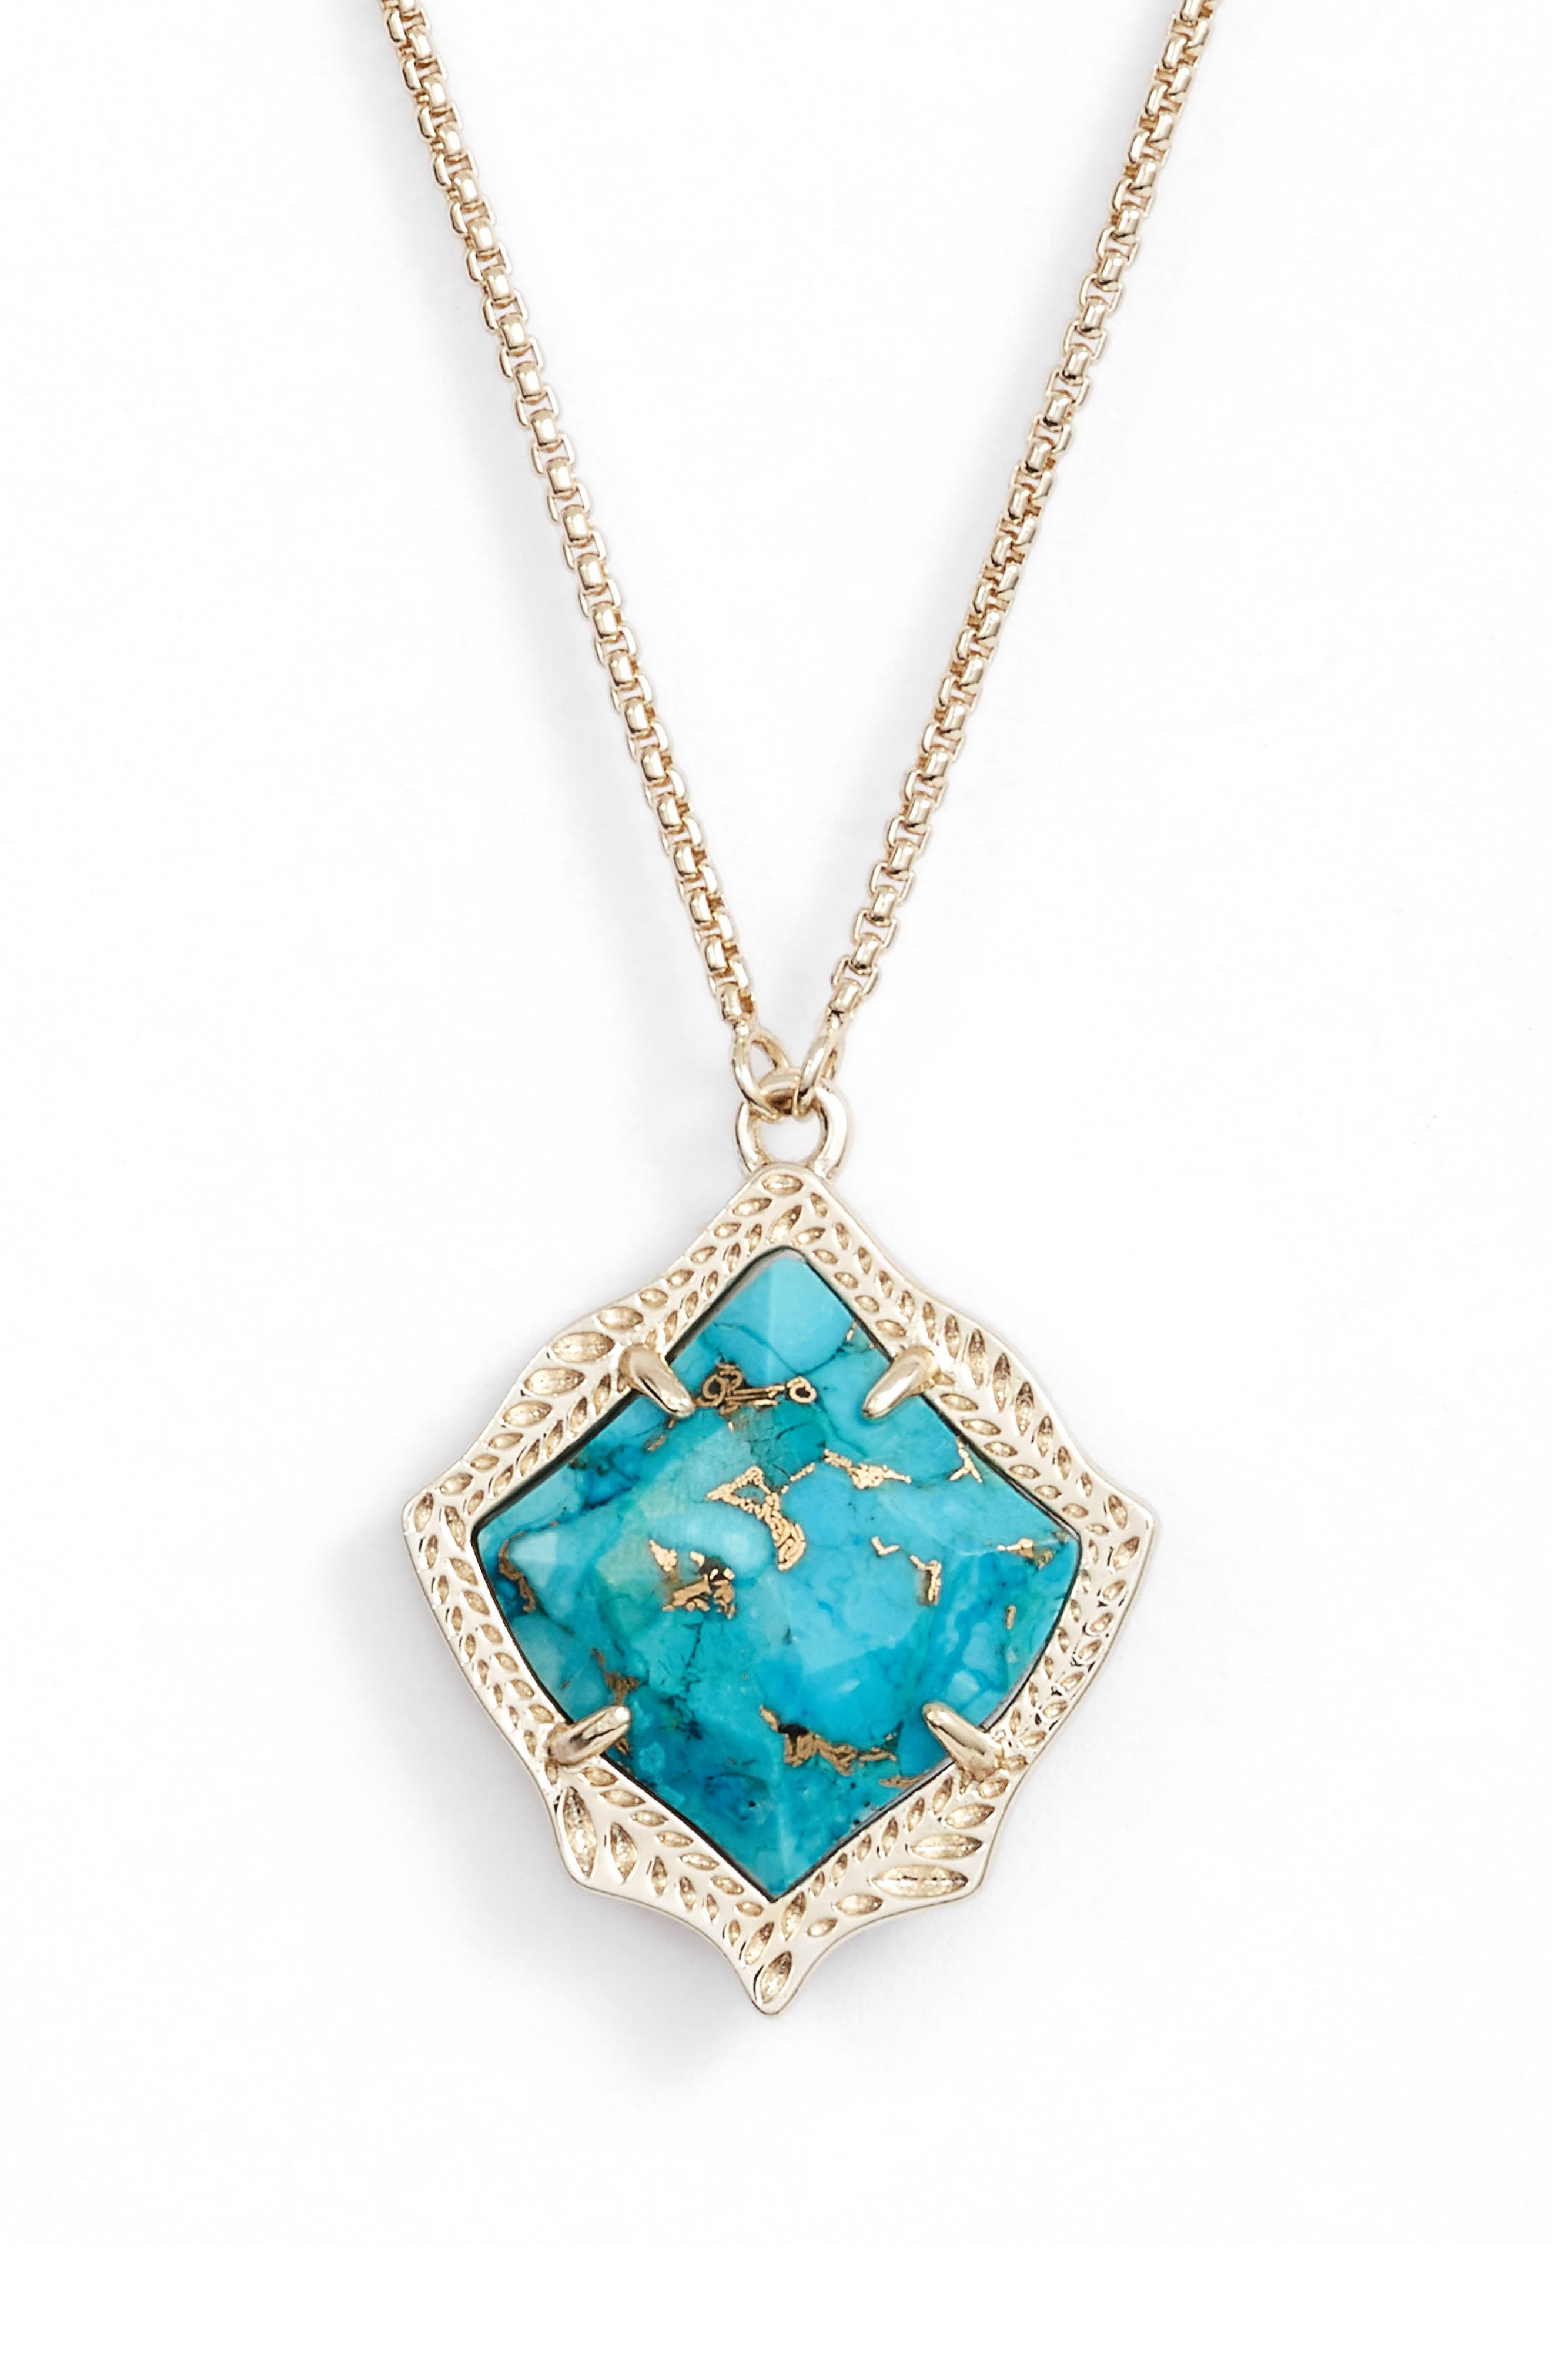 KENDRA SCOTT Kacey Pendant Necklace, Main, color, TURQUOISE MAGNESITE/ GOLD